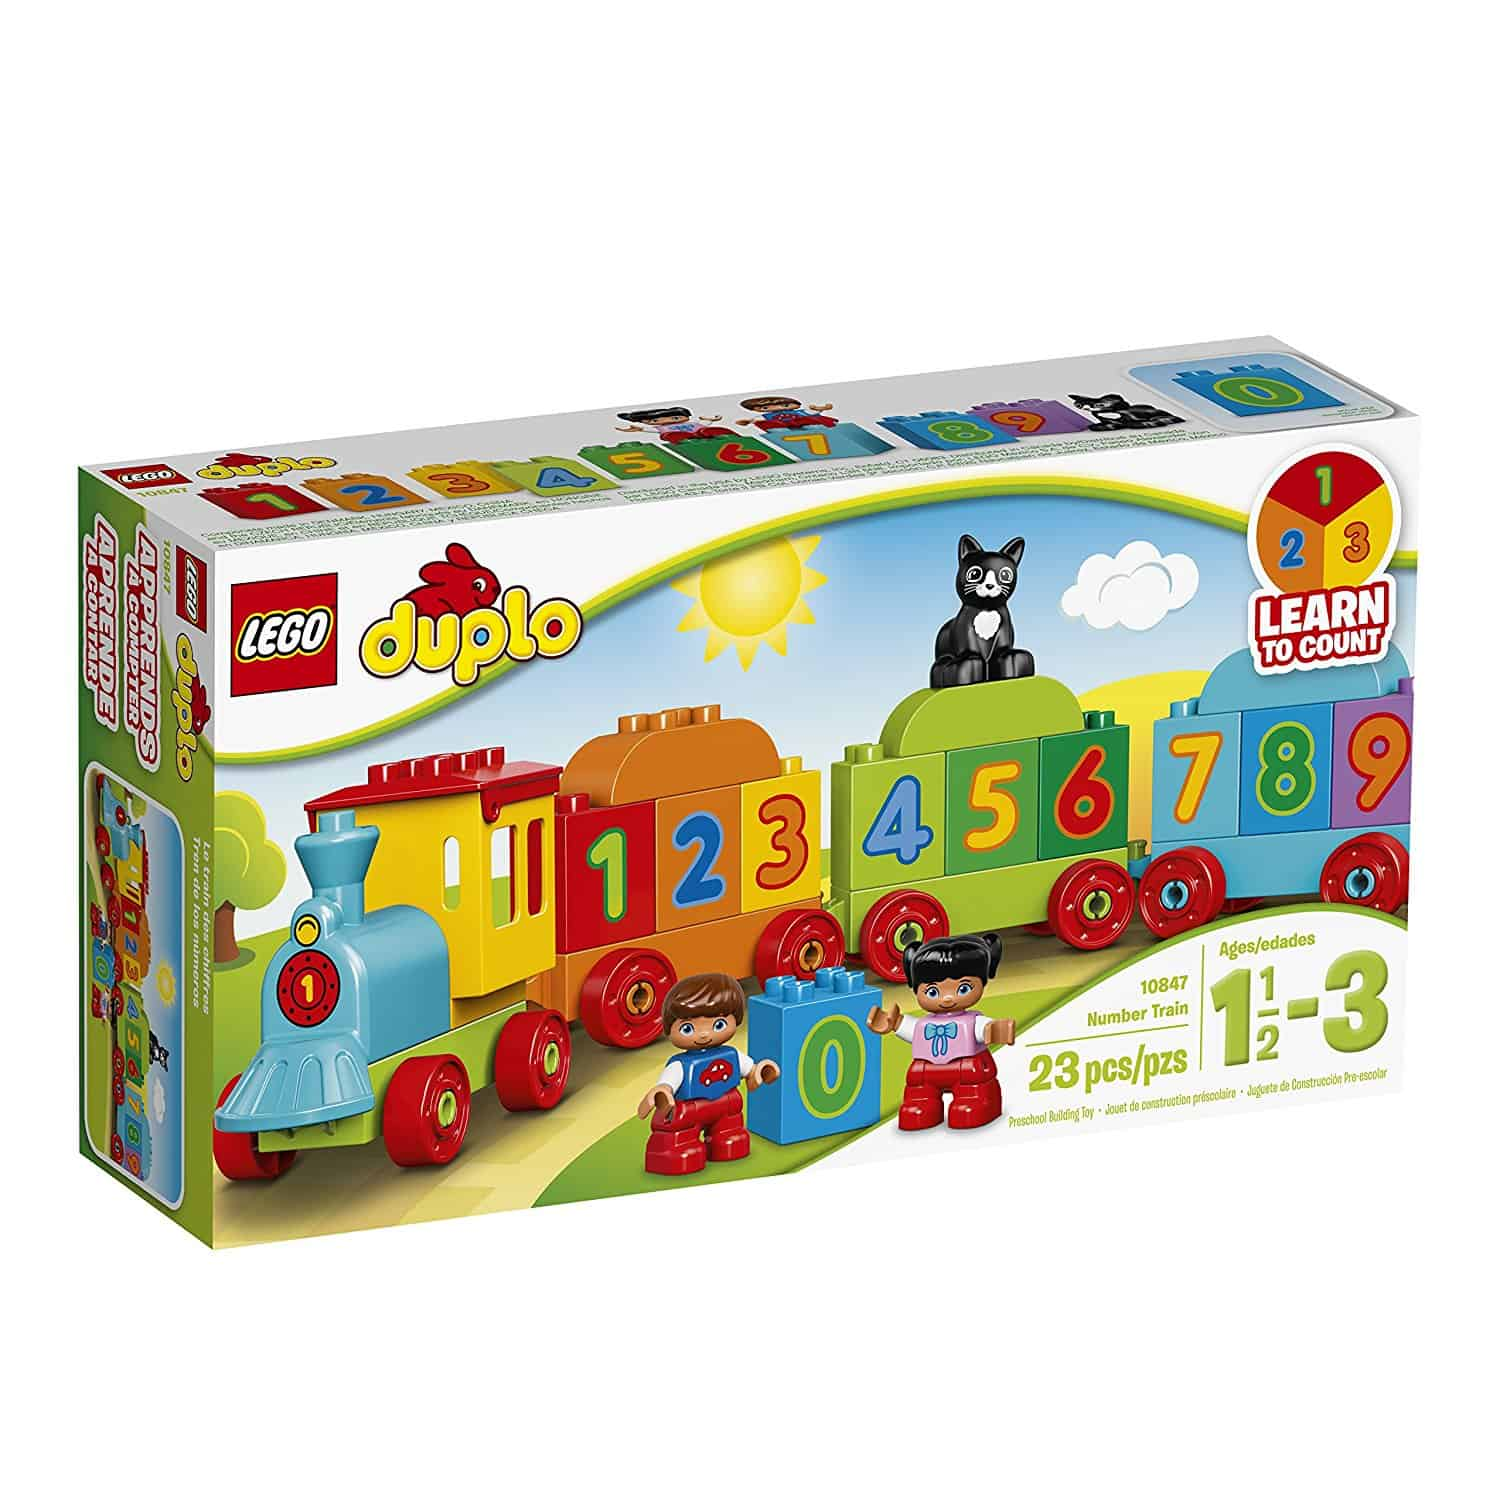 Steady Electronic Rail Track Car Battery Power Educational Toy Gift For Children Kids Toys & Hobbies